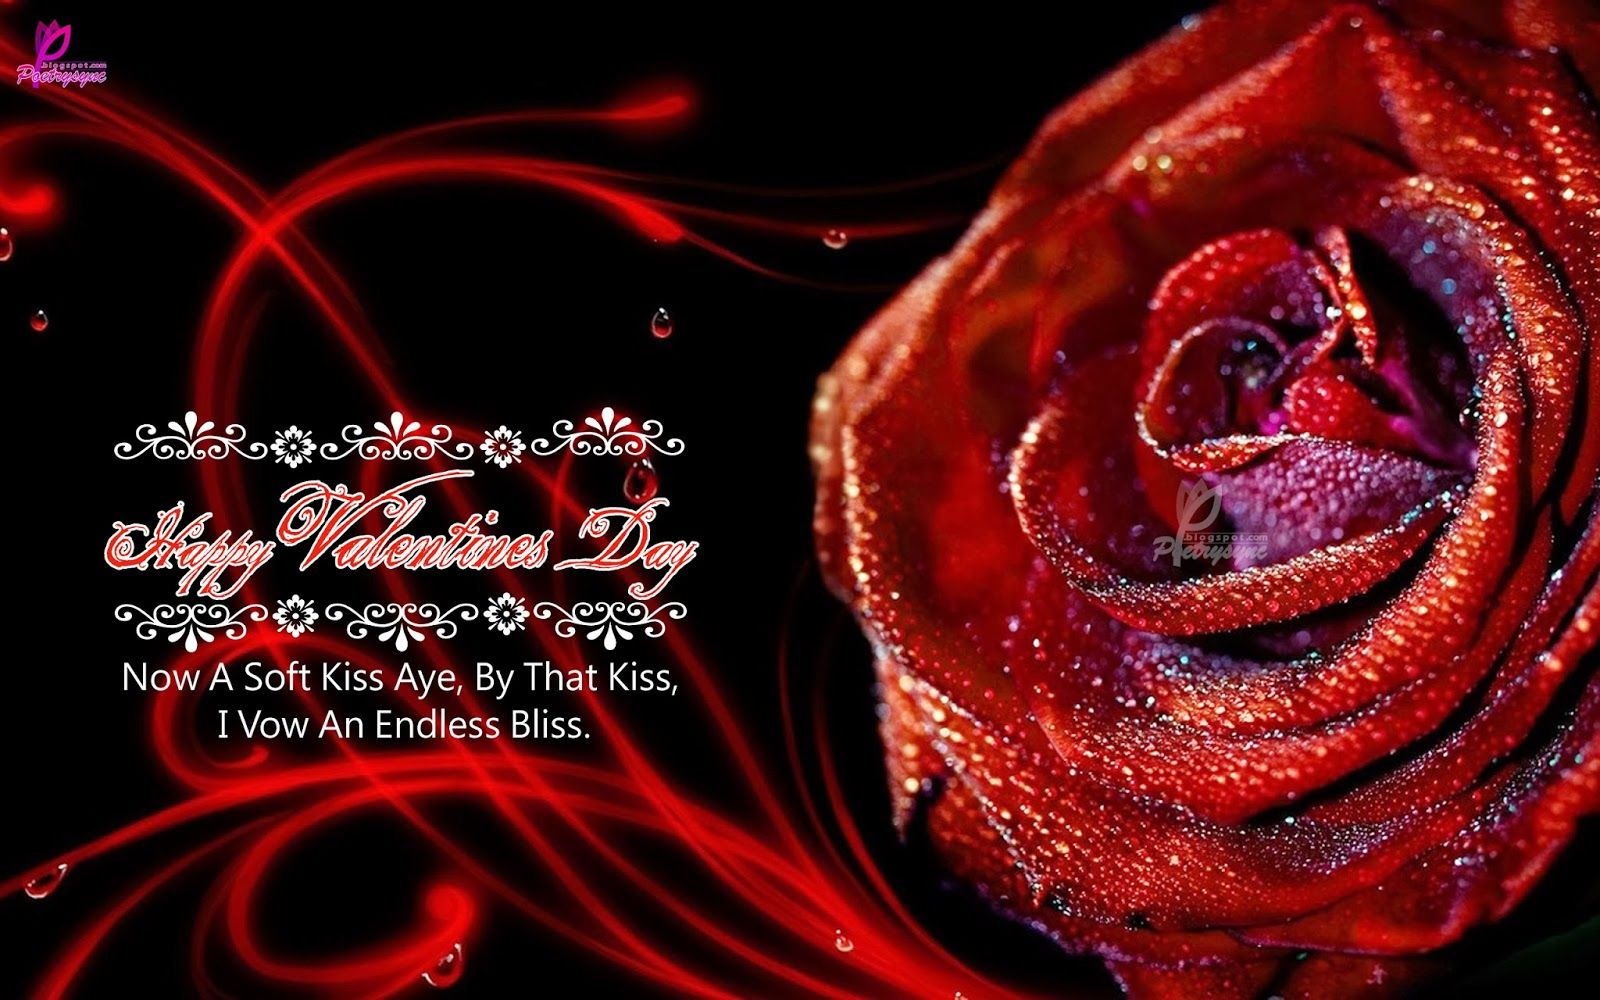 Happy Valentines Day Wishes Ecard Beautiful Red Rose For Lover